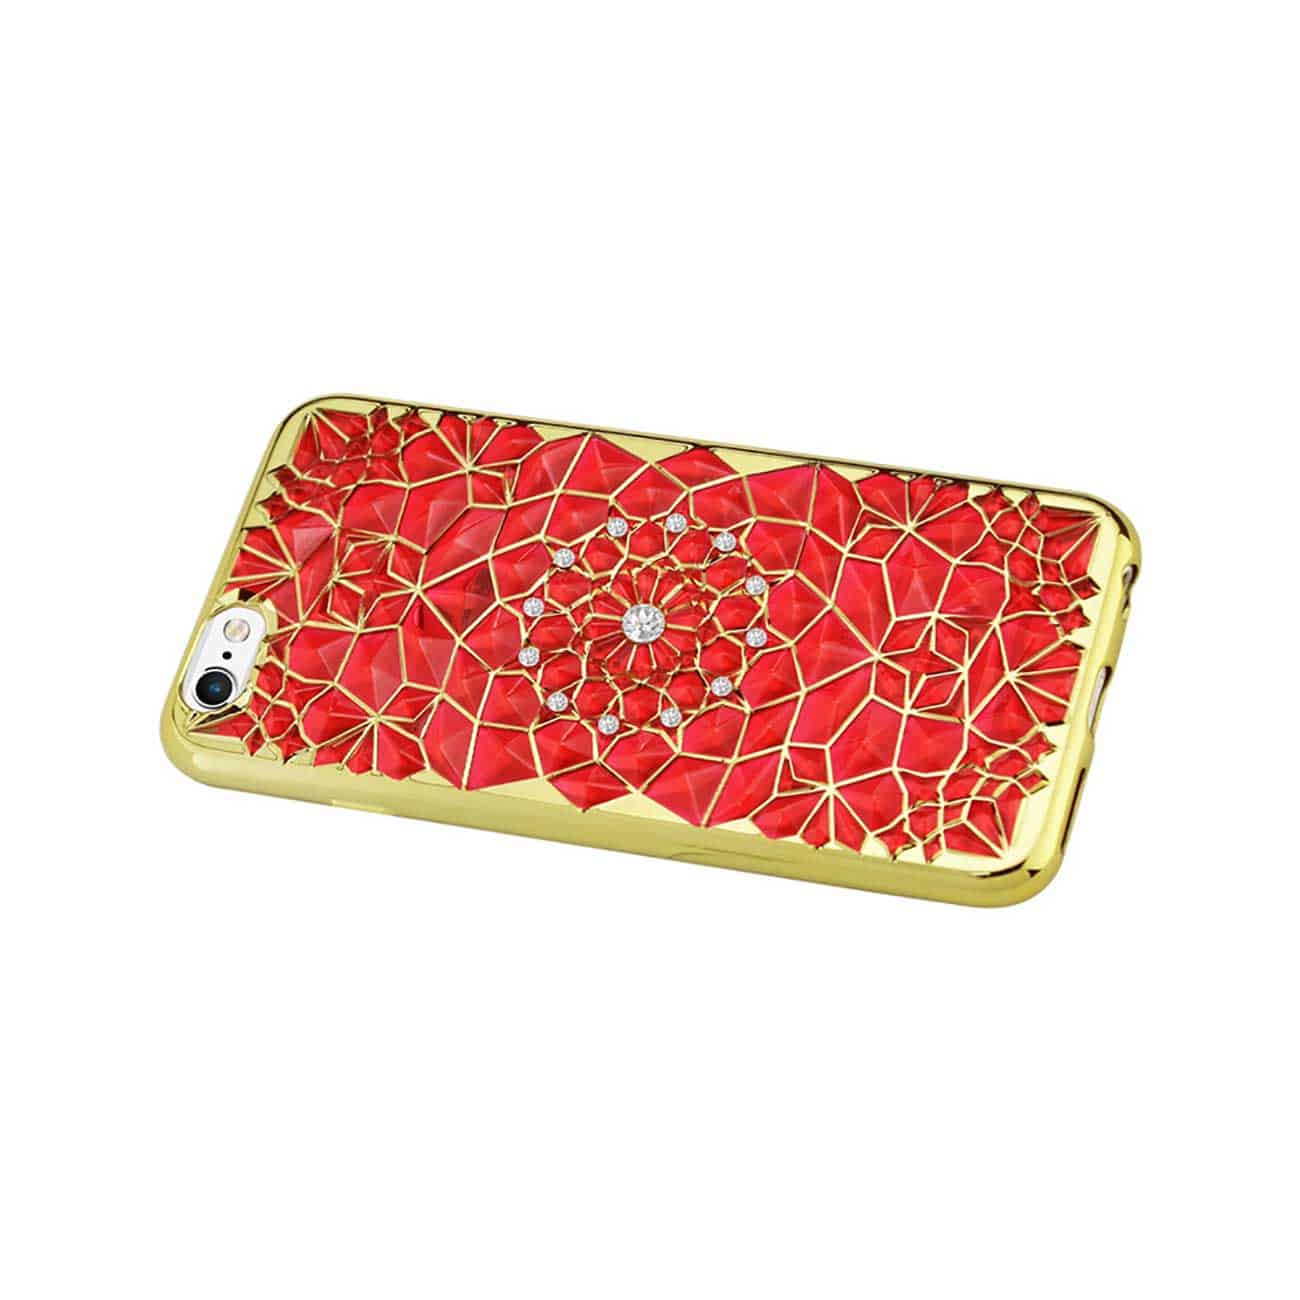 IPHONE 6 PLUS/ 6S PLUS SOFT TPU CASE WITH SPARKLING DIAMOND SUNFLOWER DESIGN IN RED